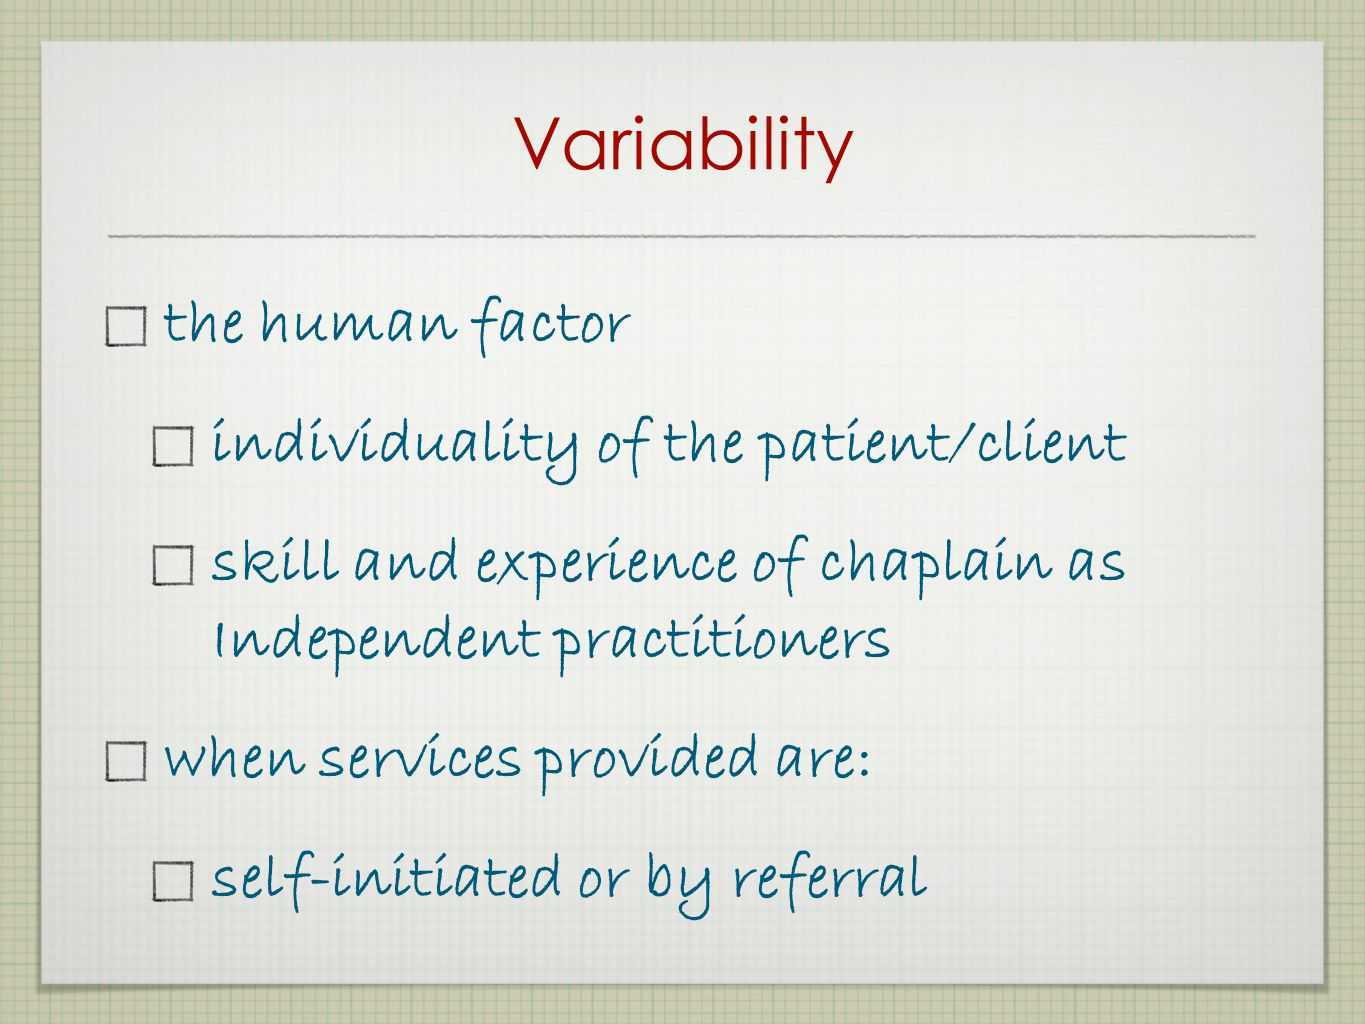 Variability the human factor individuality of the patient/client skill and experience of chaplain as Independent practitioners when services provided are: self-initiated or by referral